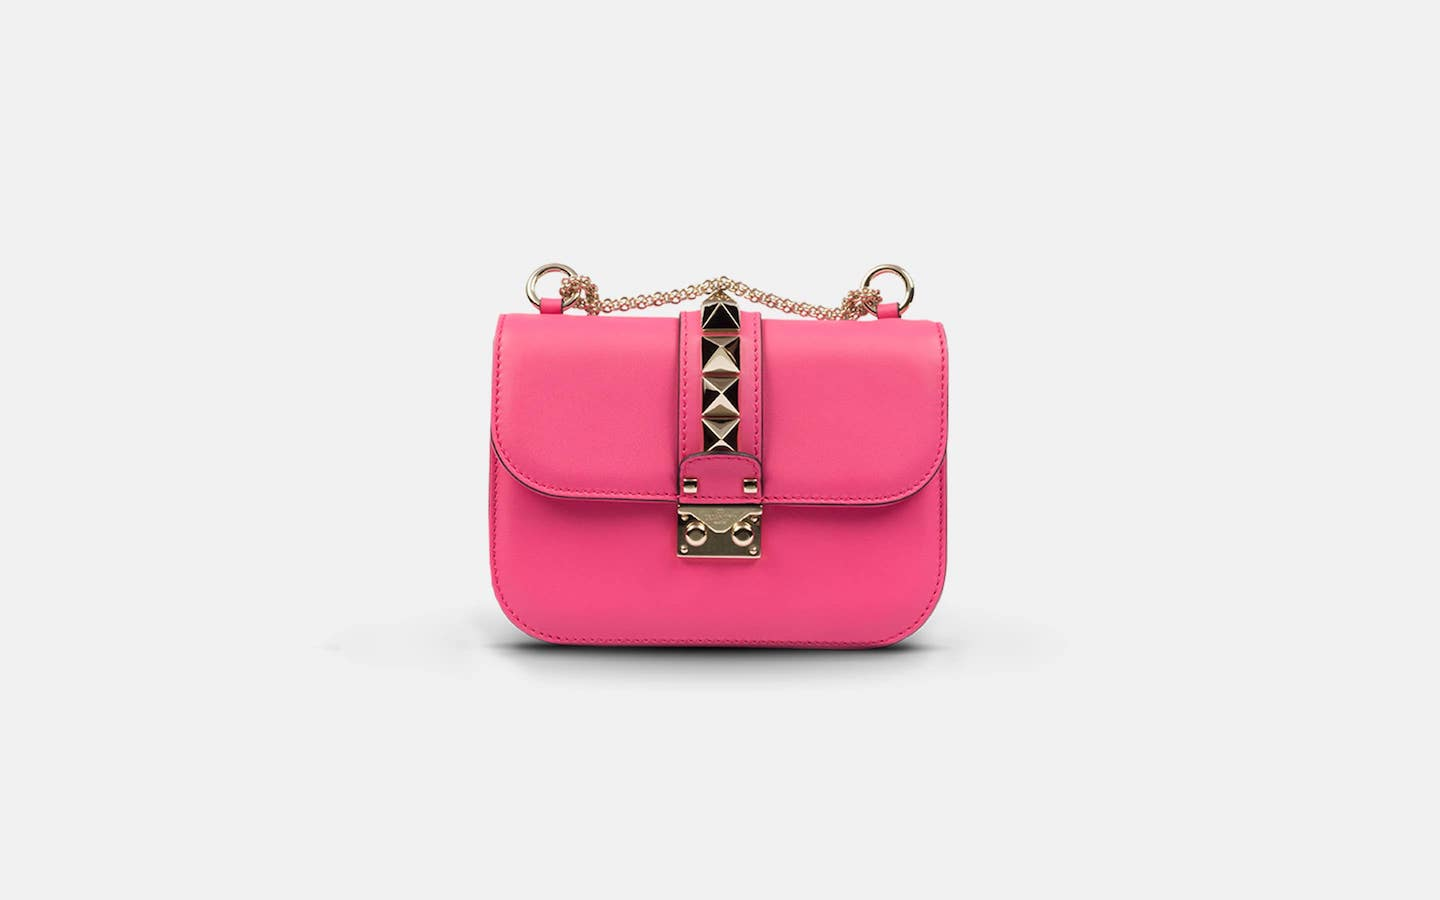 Valentino_Lock_Mini_Crossbody_Pink_Shoulder_Bag_Front-min